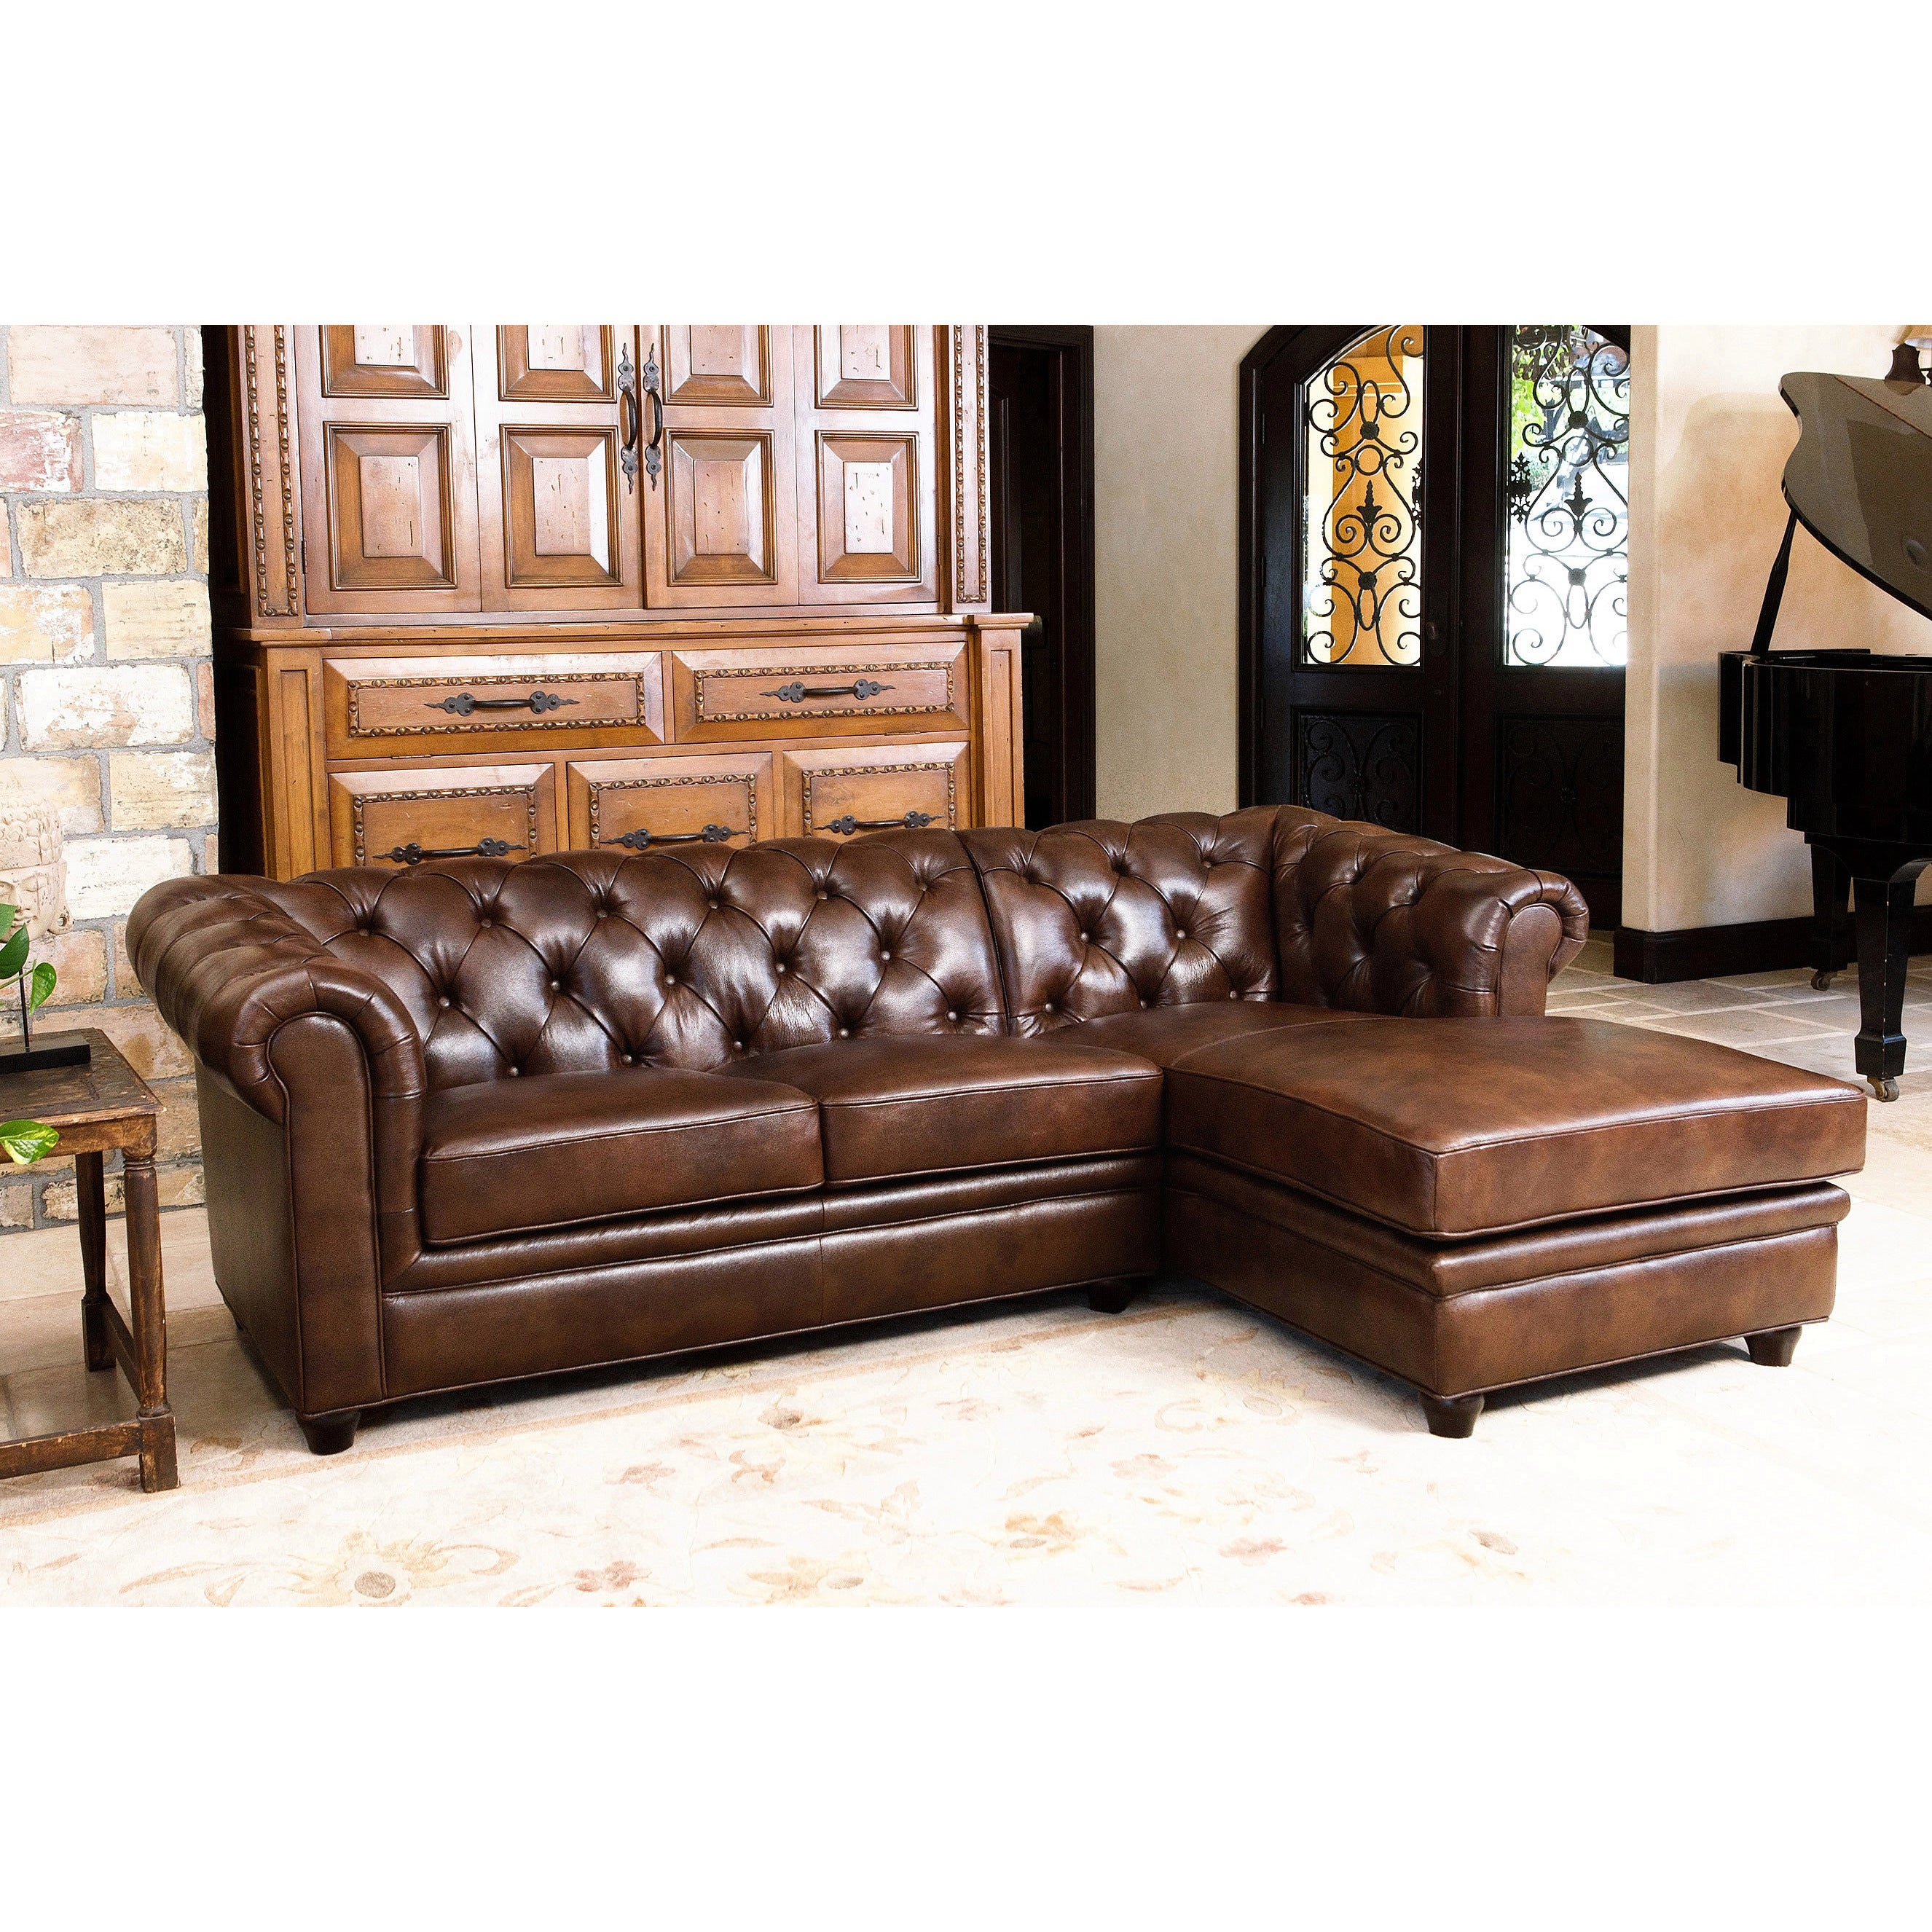 Shop Abbyson Tuscan Tufted Top Grain Leather Chaise Sectional